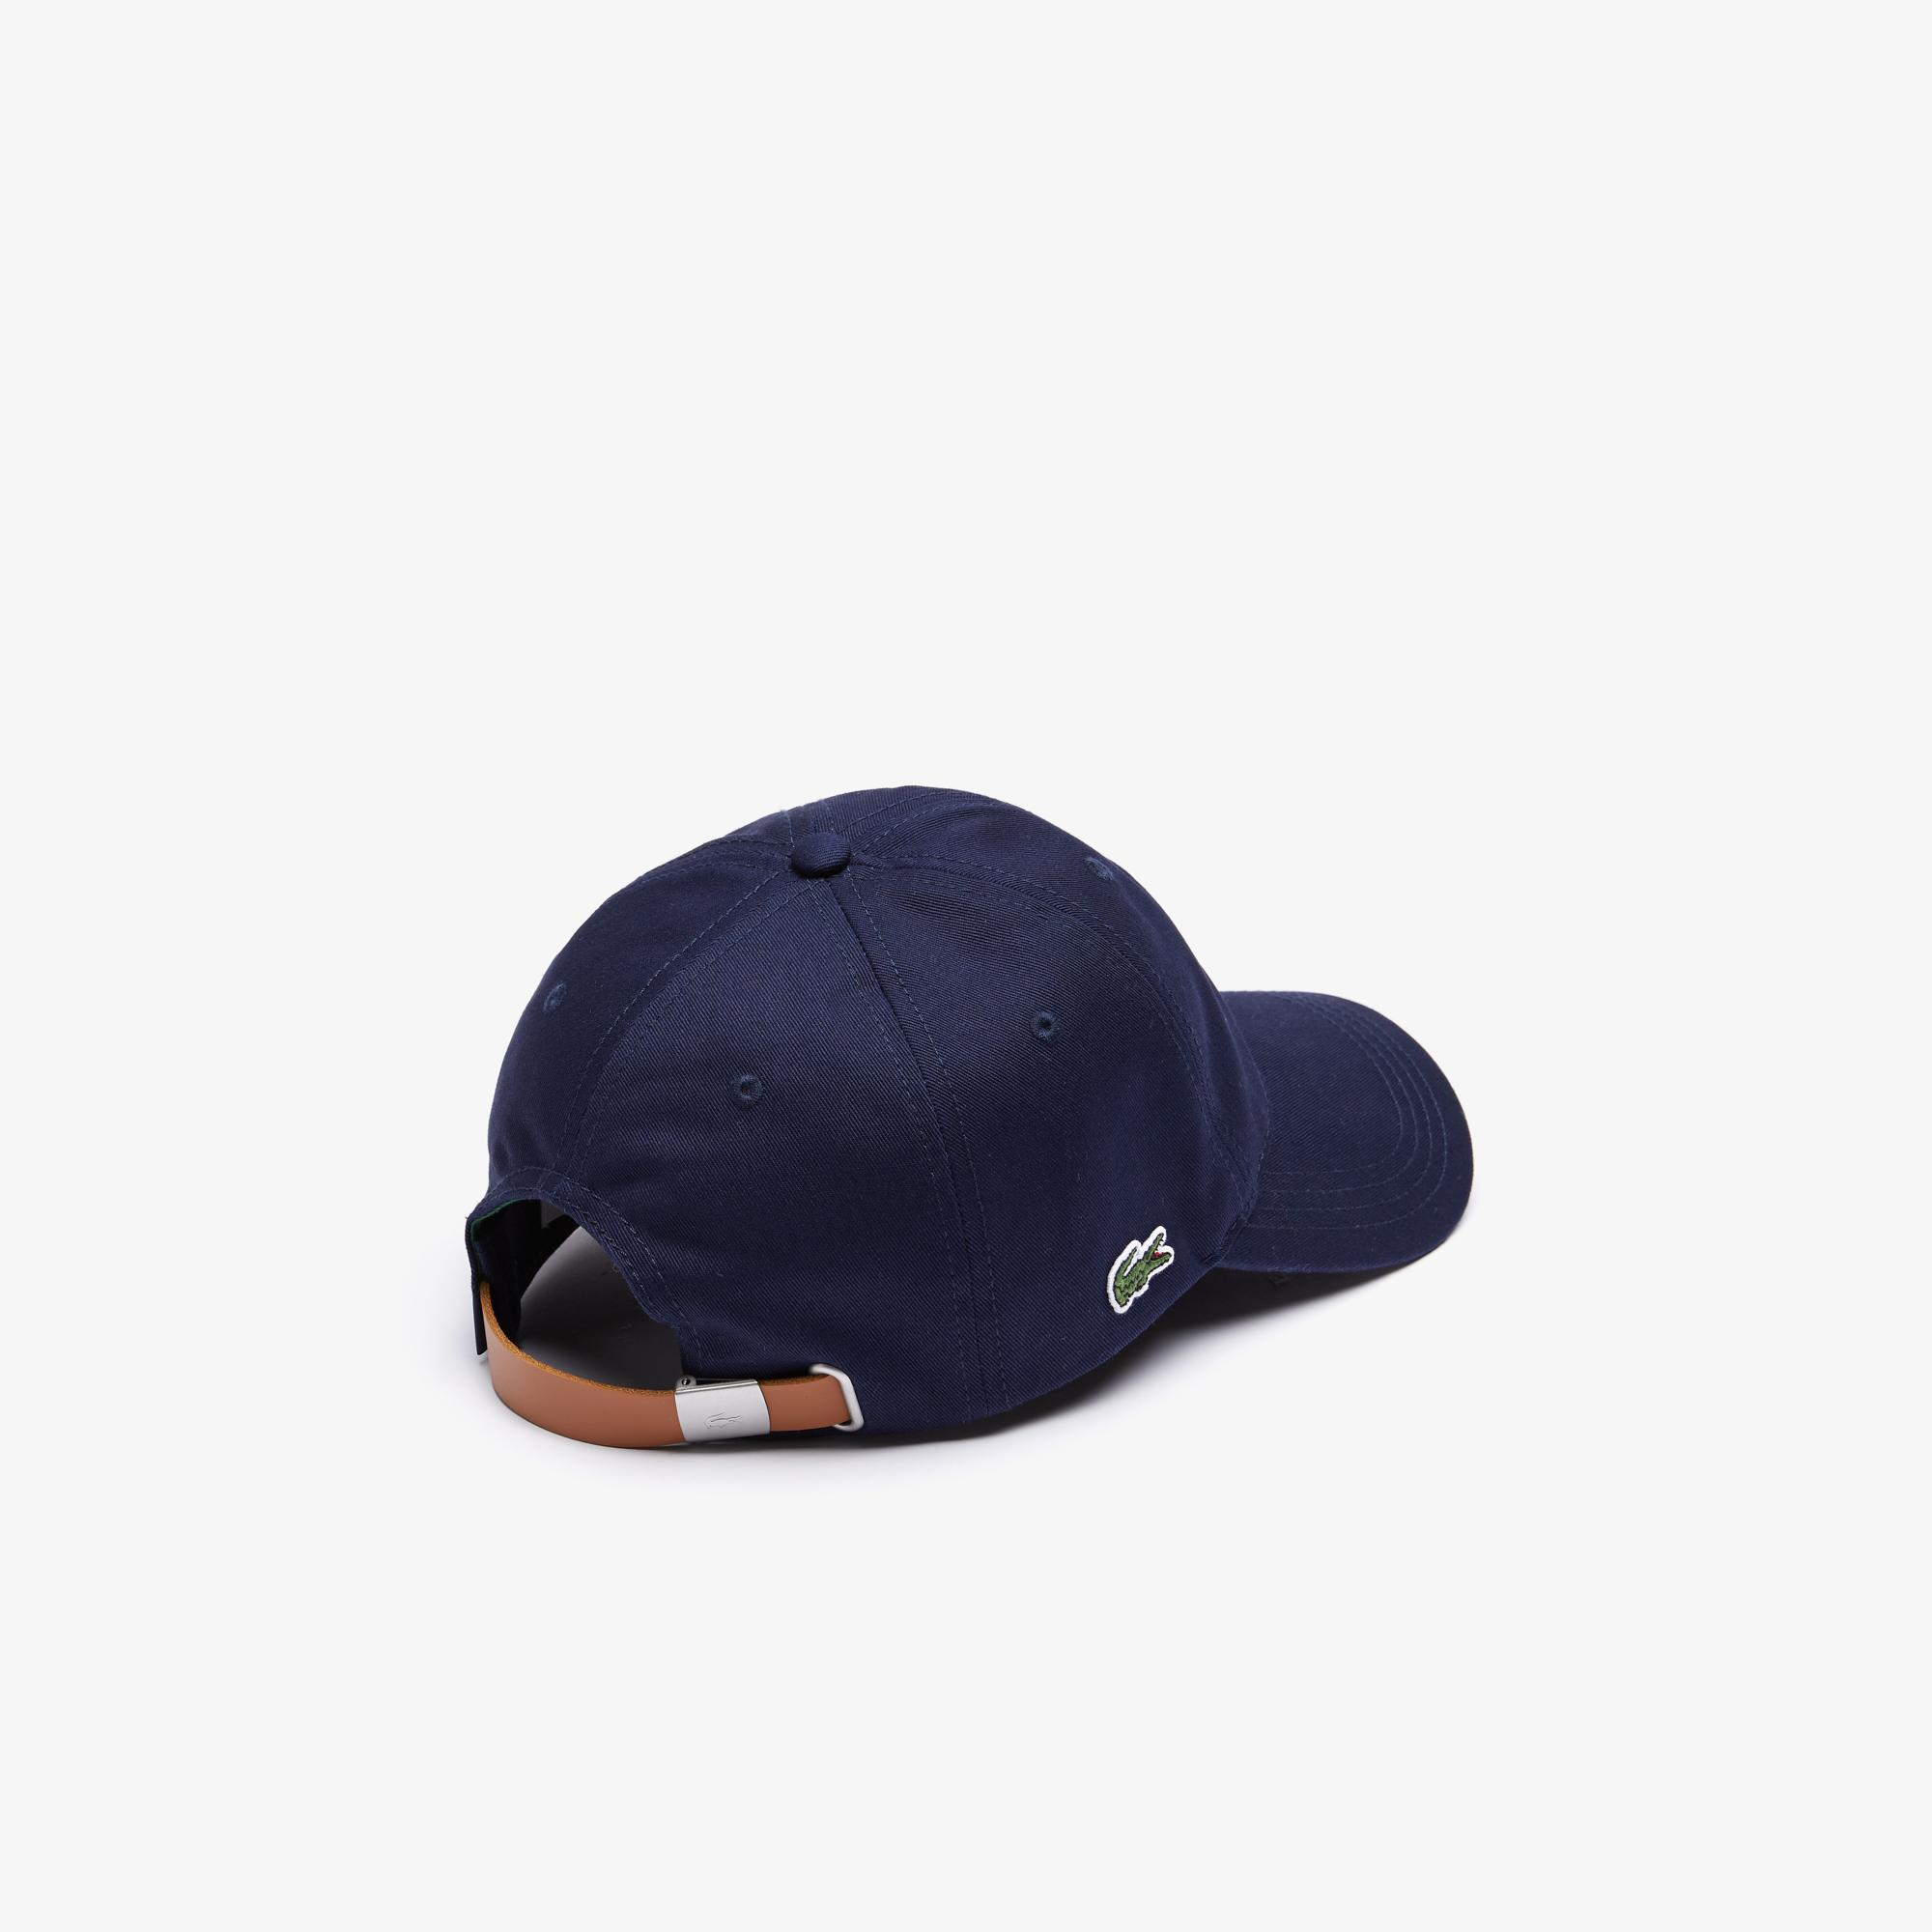 Lacoste Men's Contrast Strap Cotton Cap